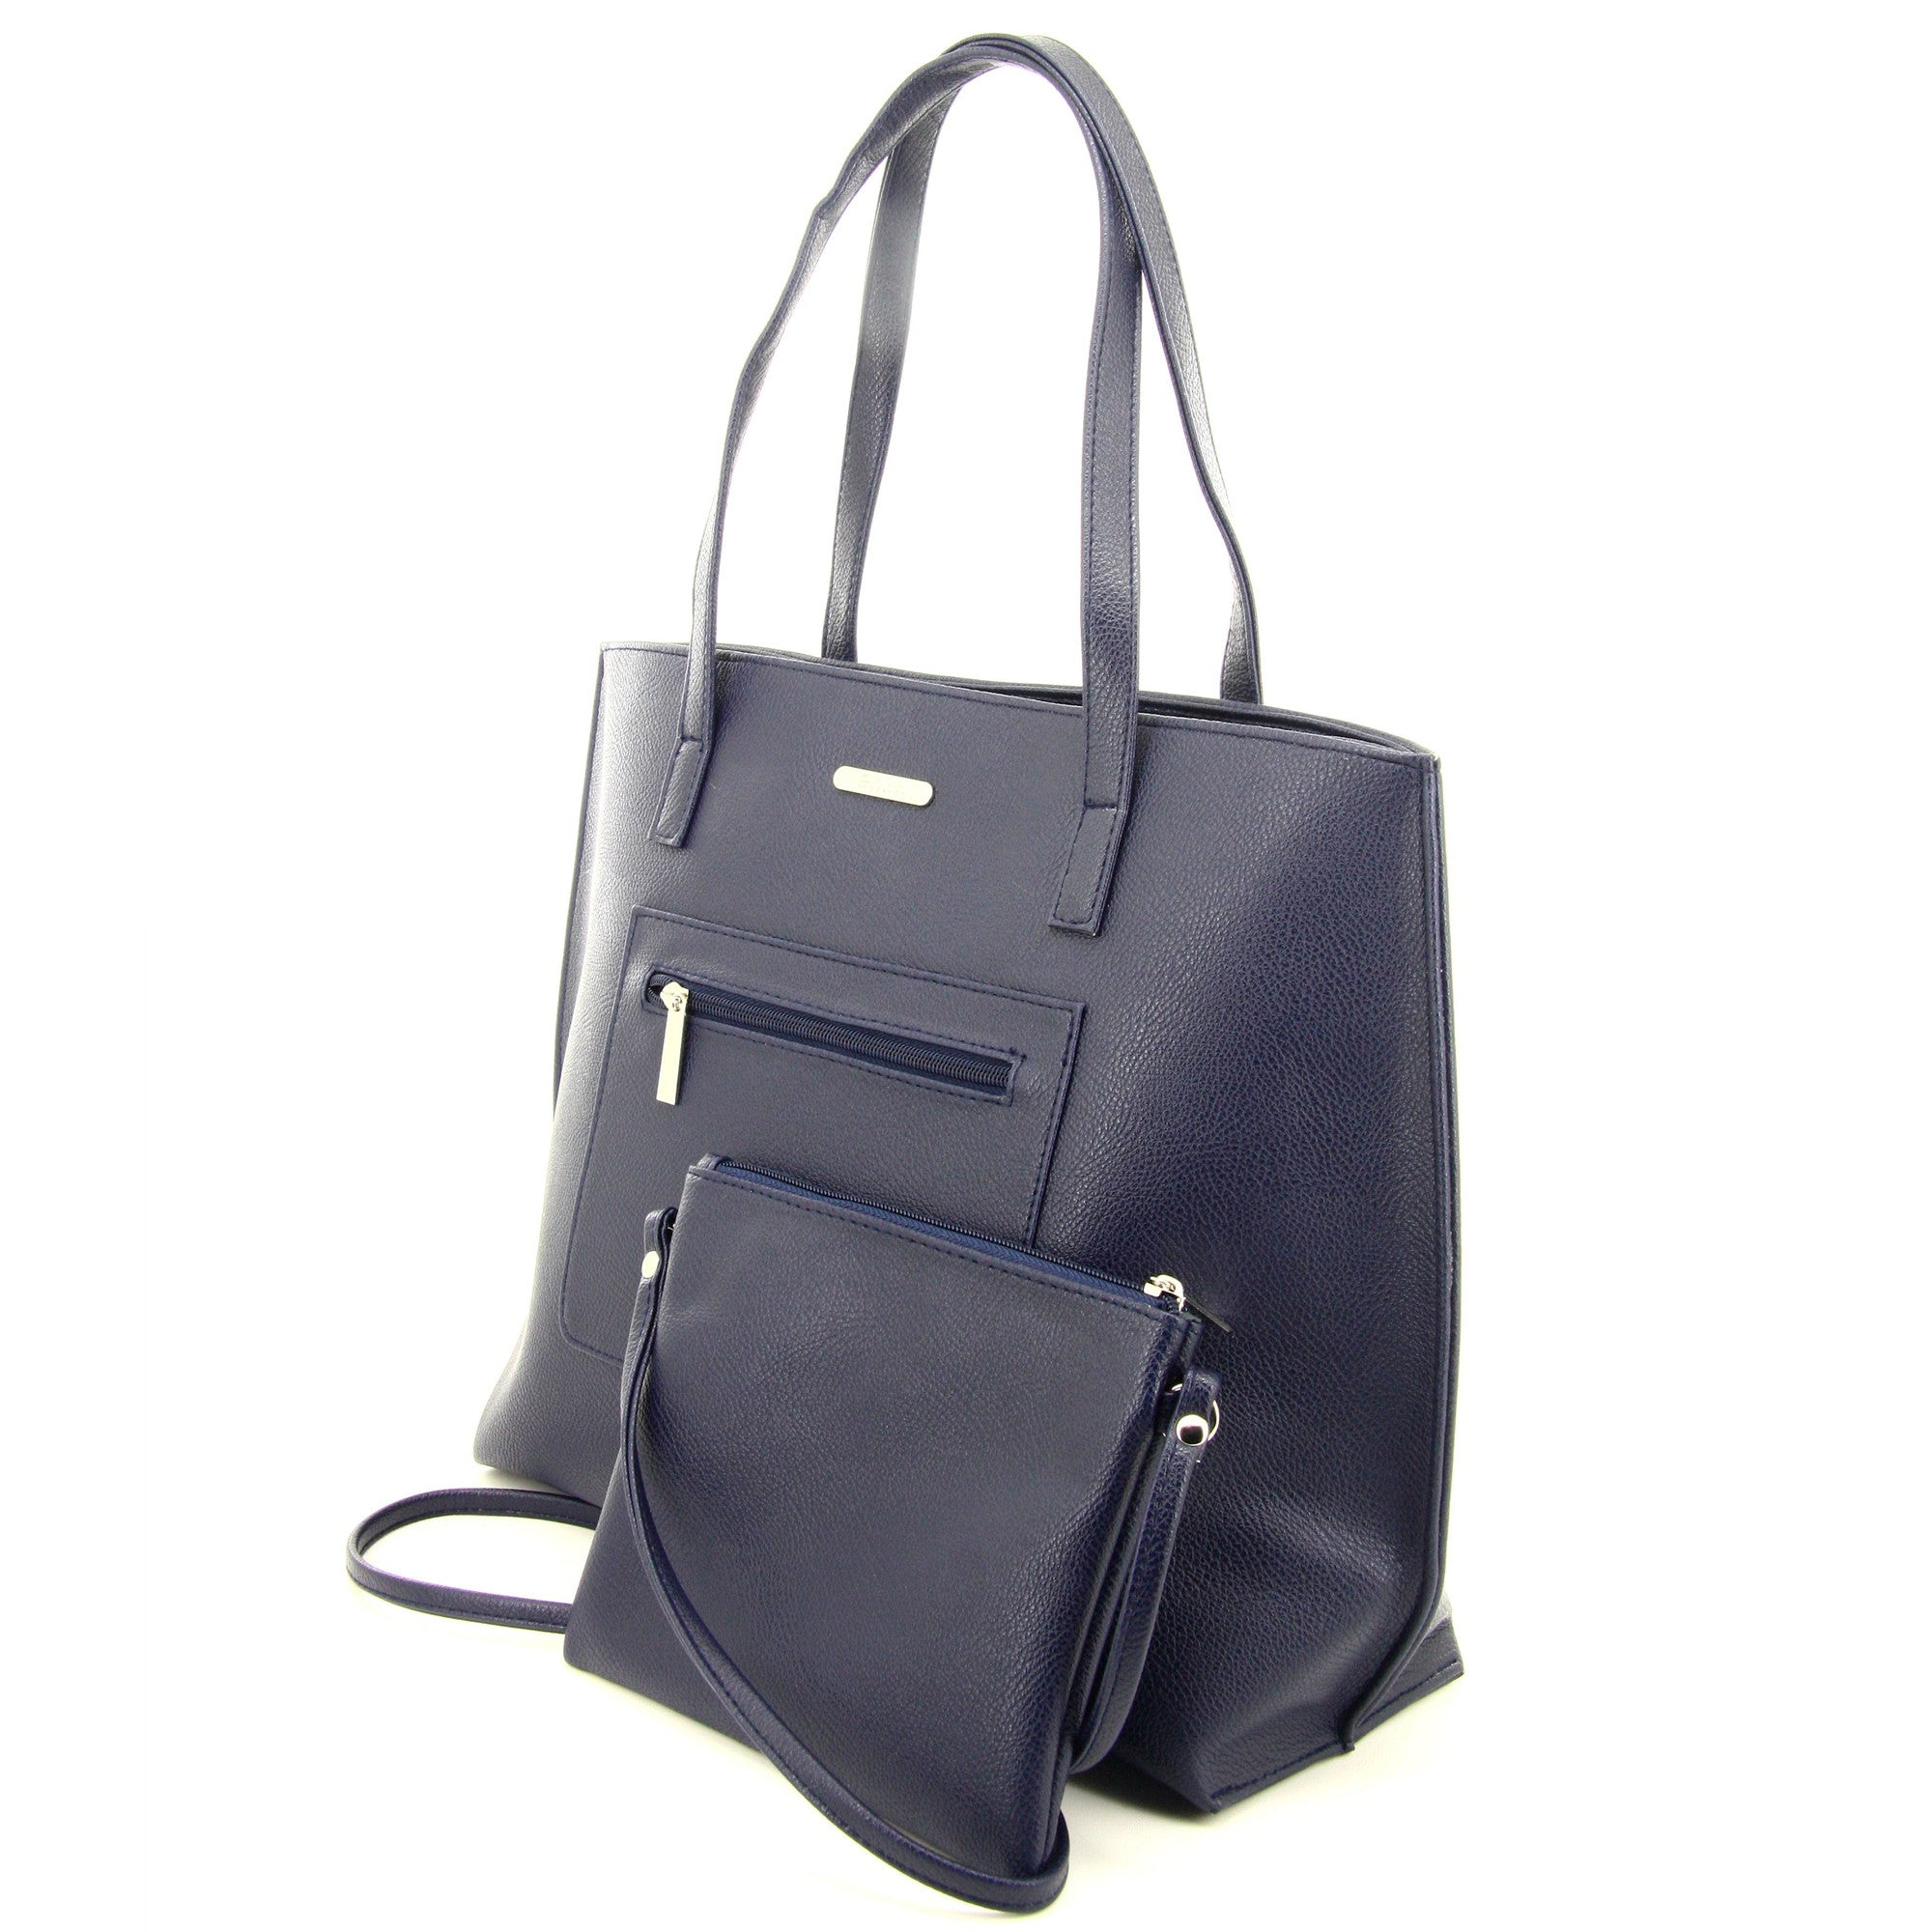 C17FE744BL 2-IN-1 TOTE BAG AND SLING (Blue)